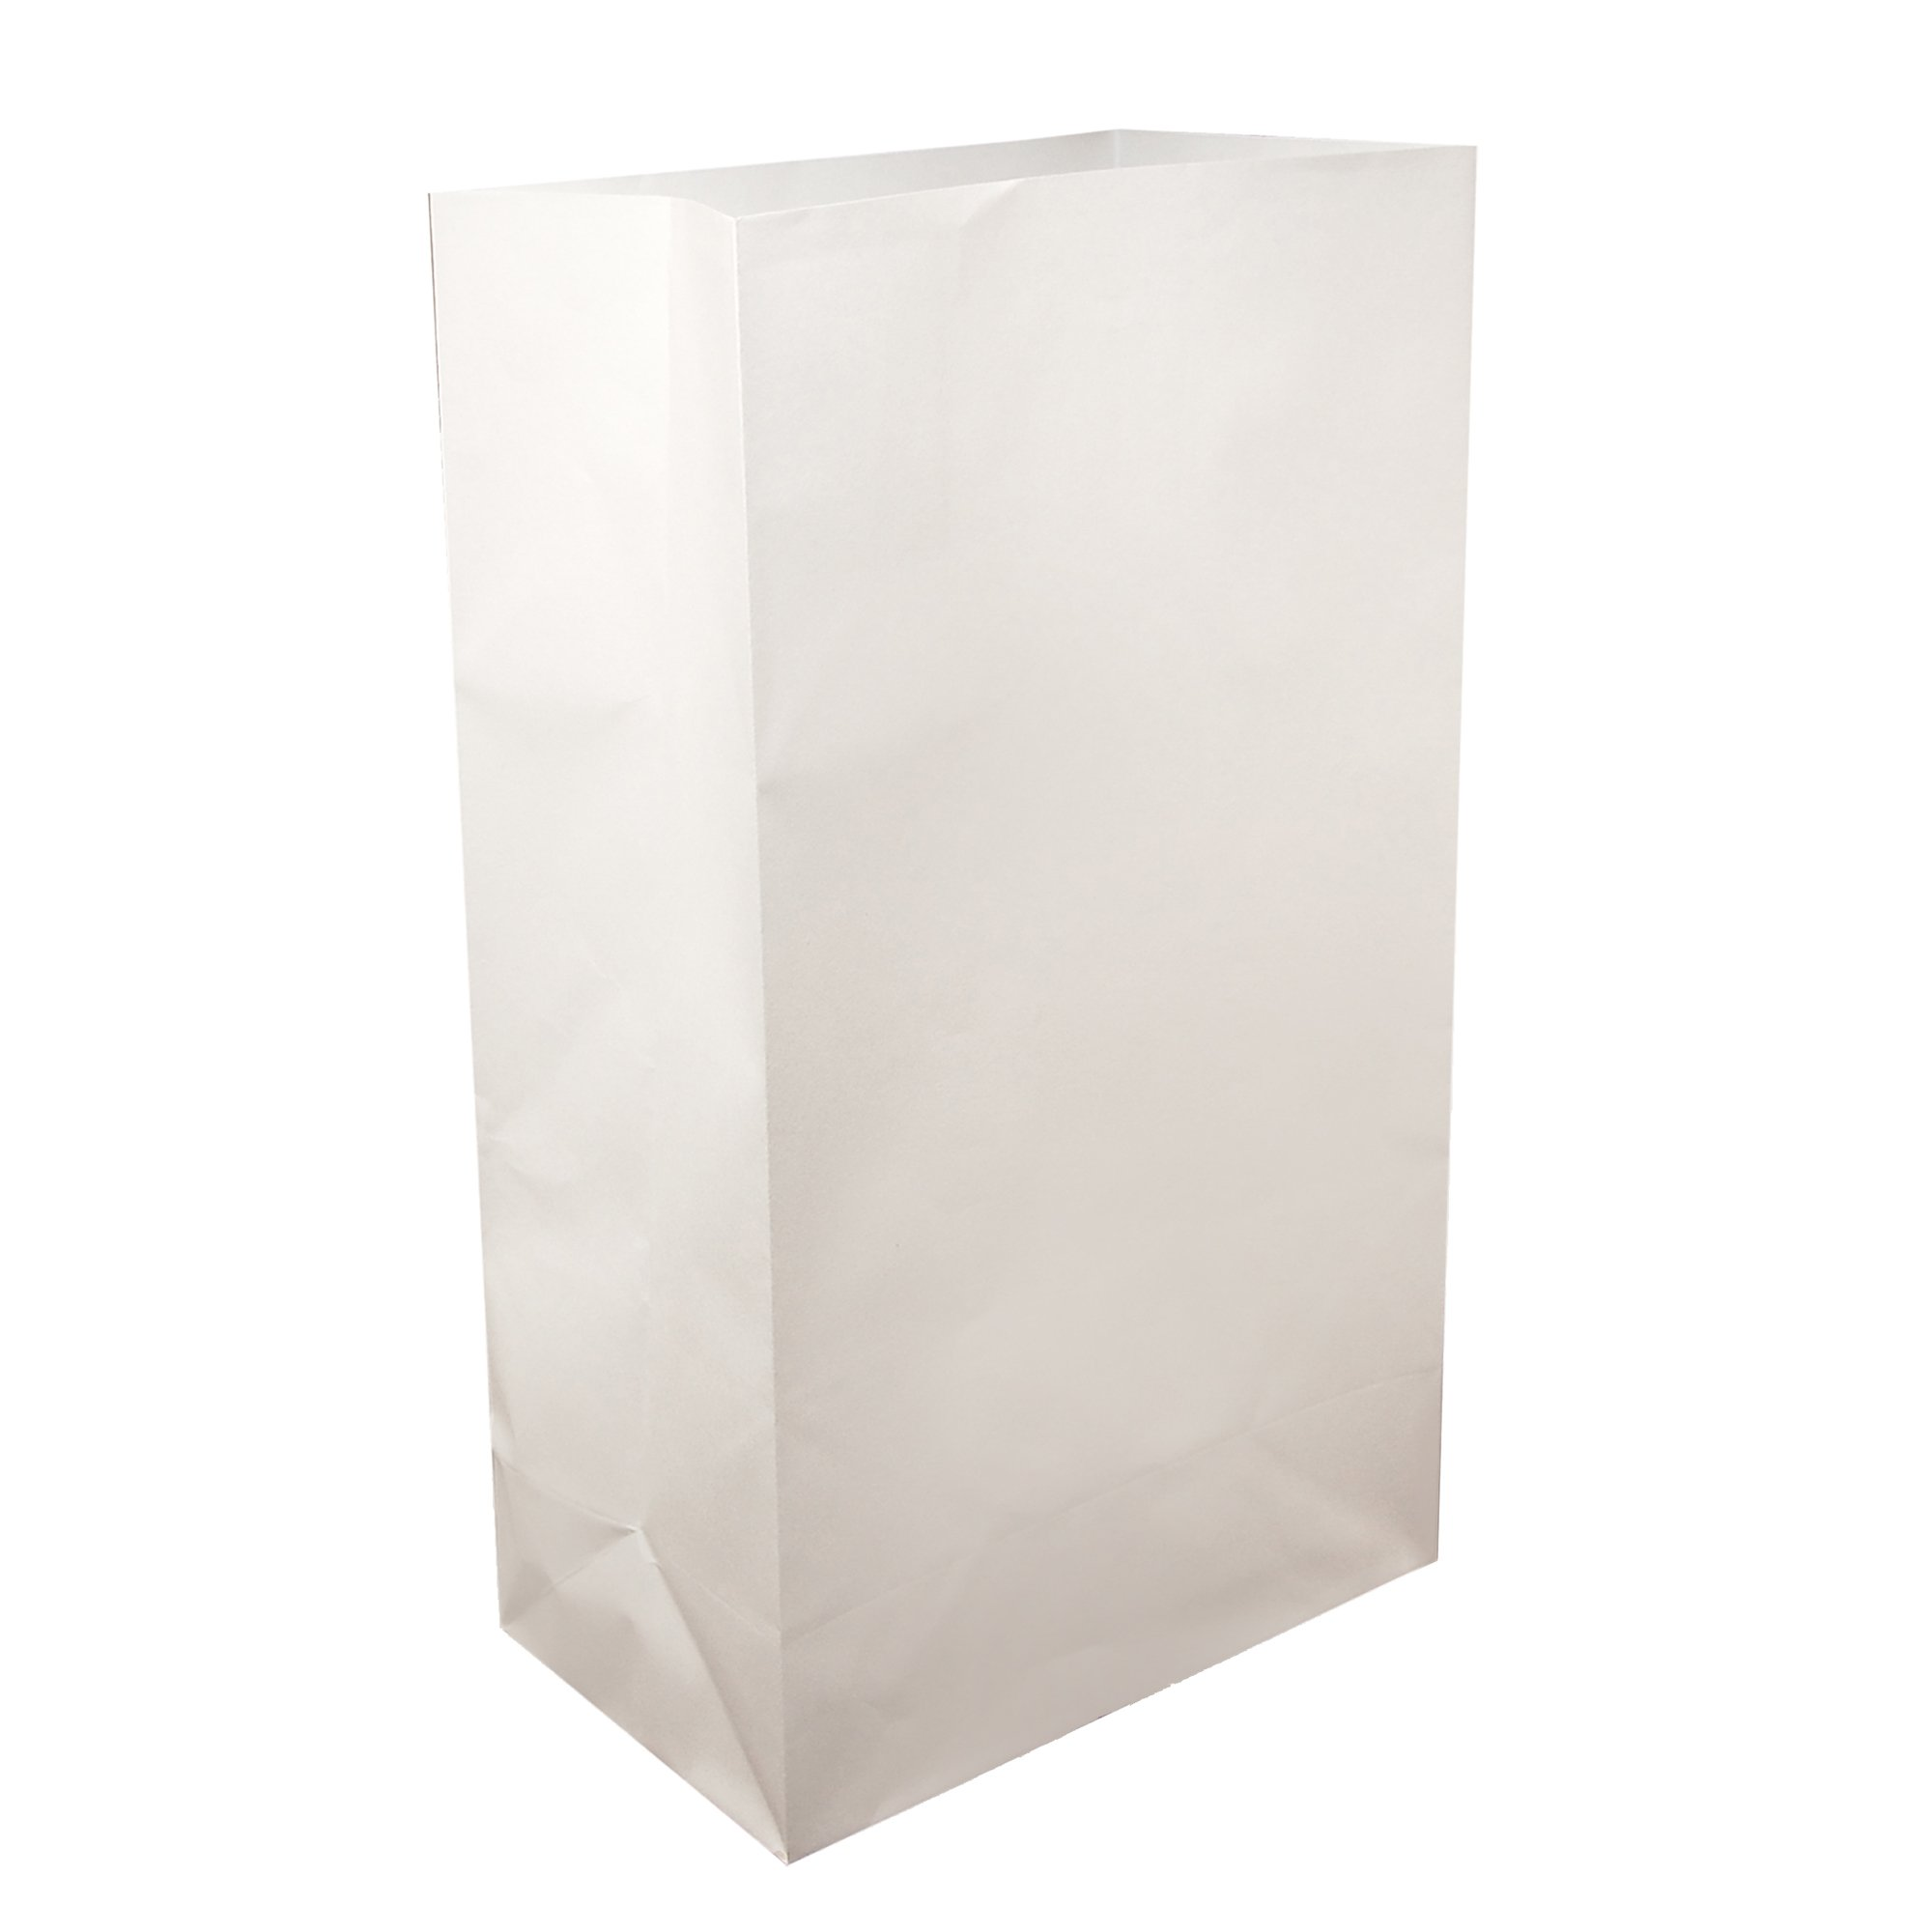 Lumabase 00410 100 Count Standard Luminaria Bags, White by Lumabase